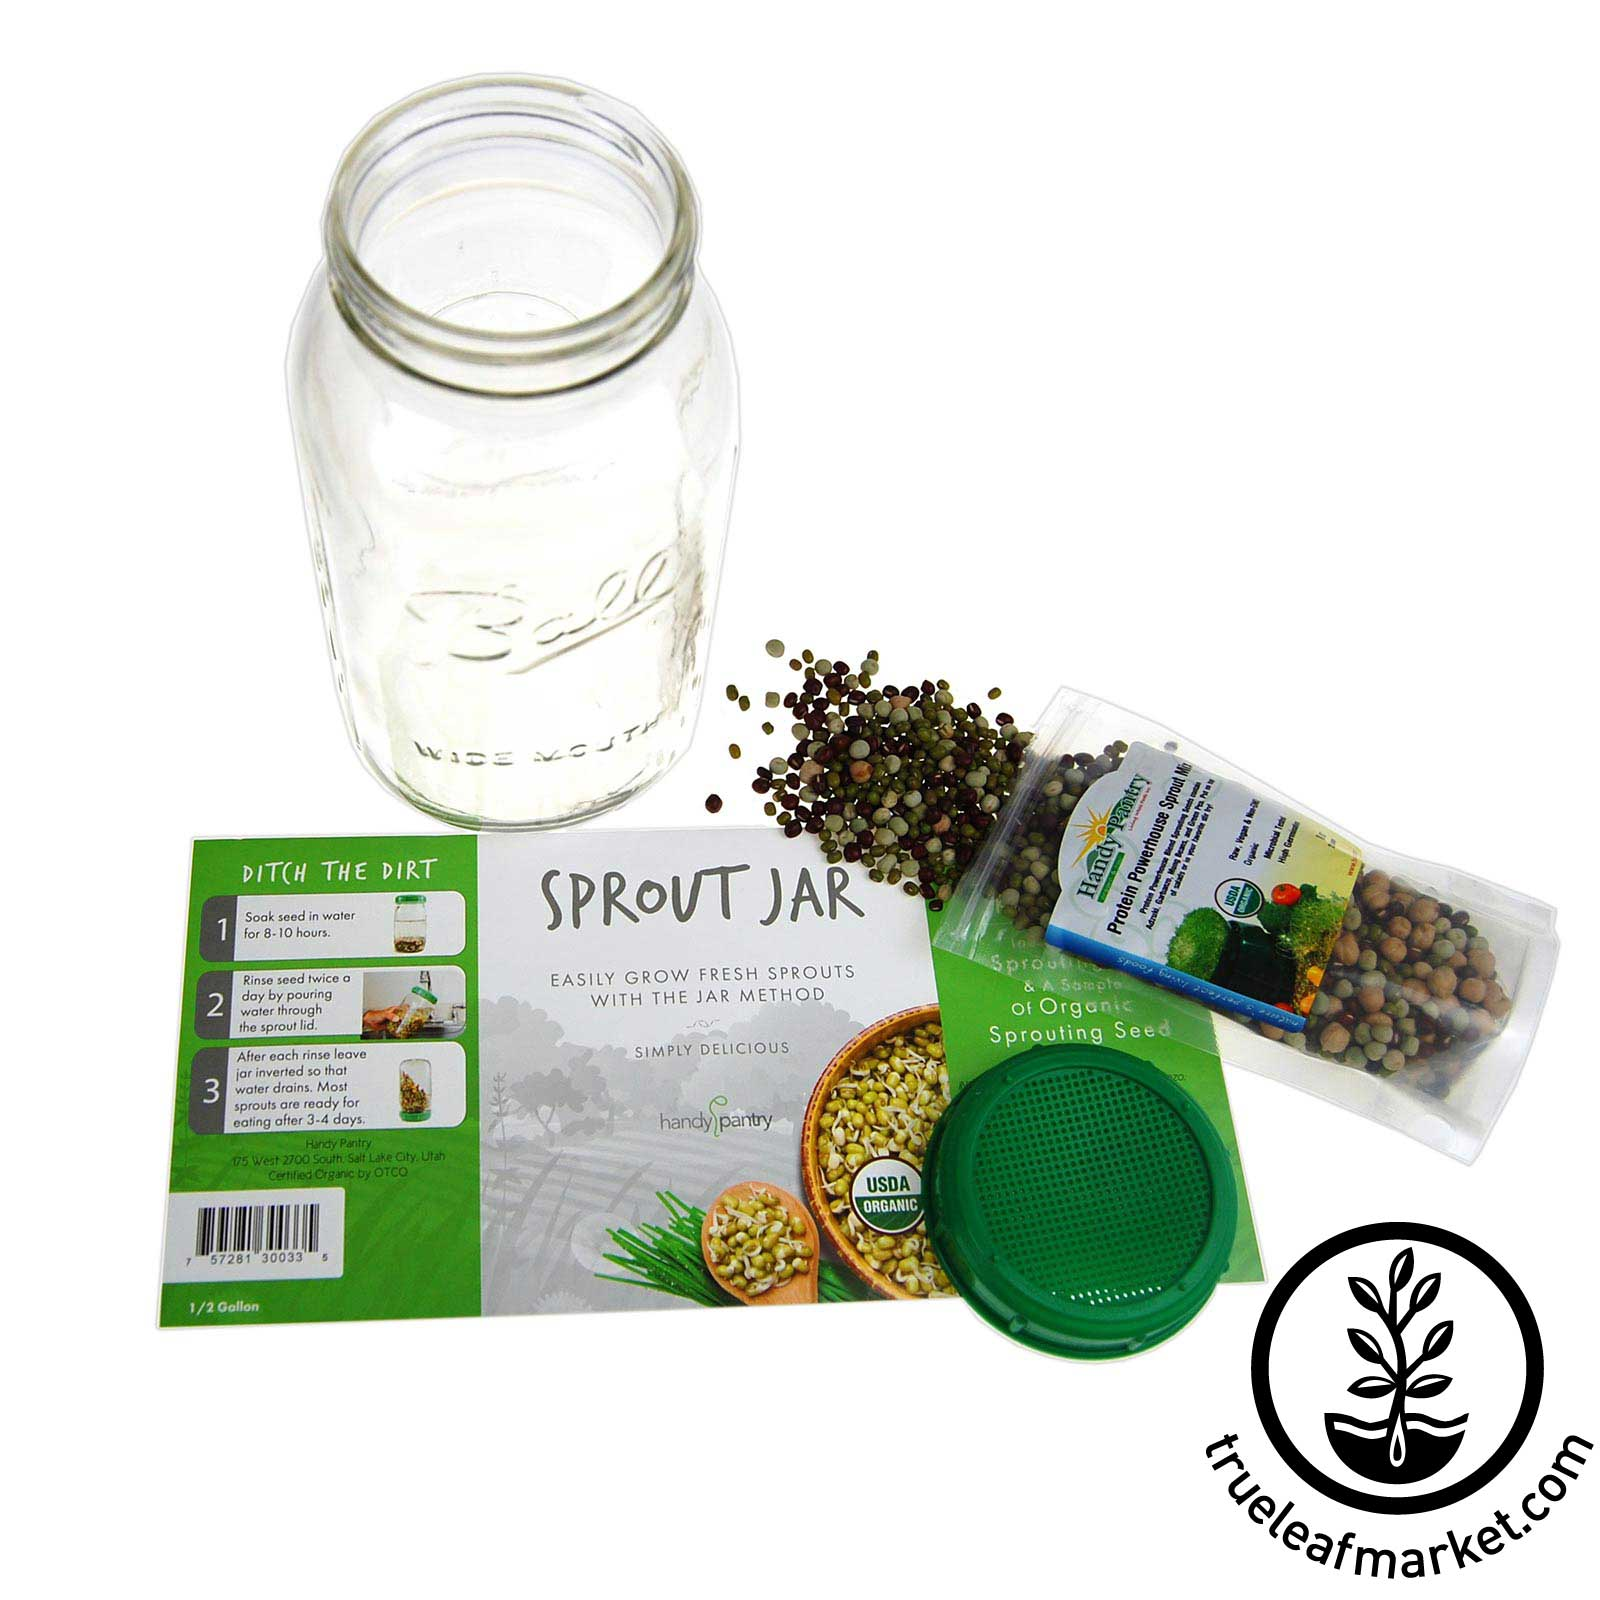 Includes half gallon jar, sprouting lid, seed, and instructions